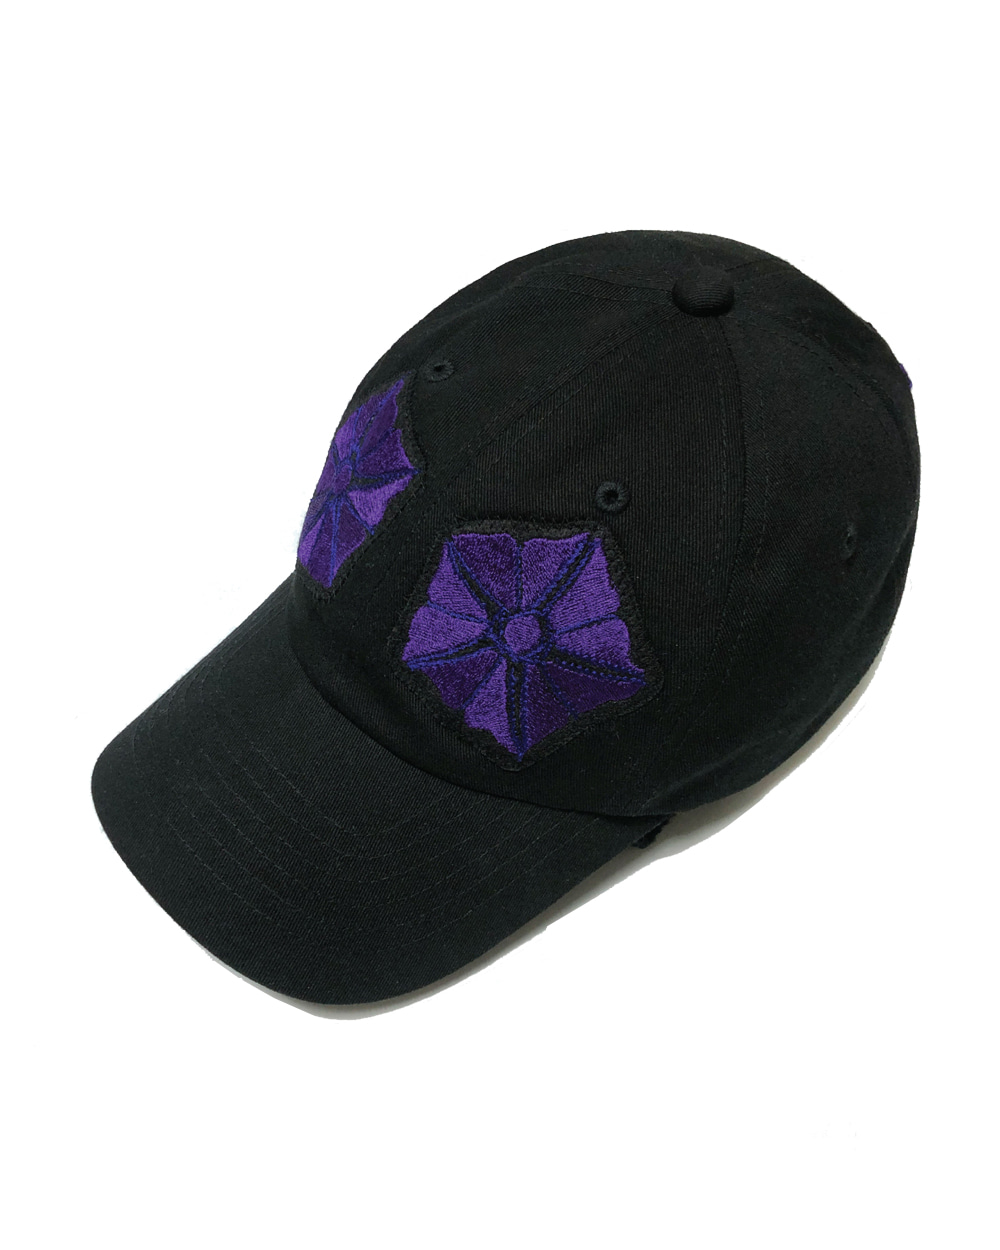 GOOD NEWS MORNING GLORY ZIPPER CAP (Black)